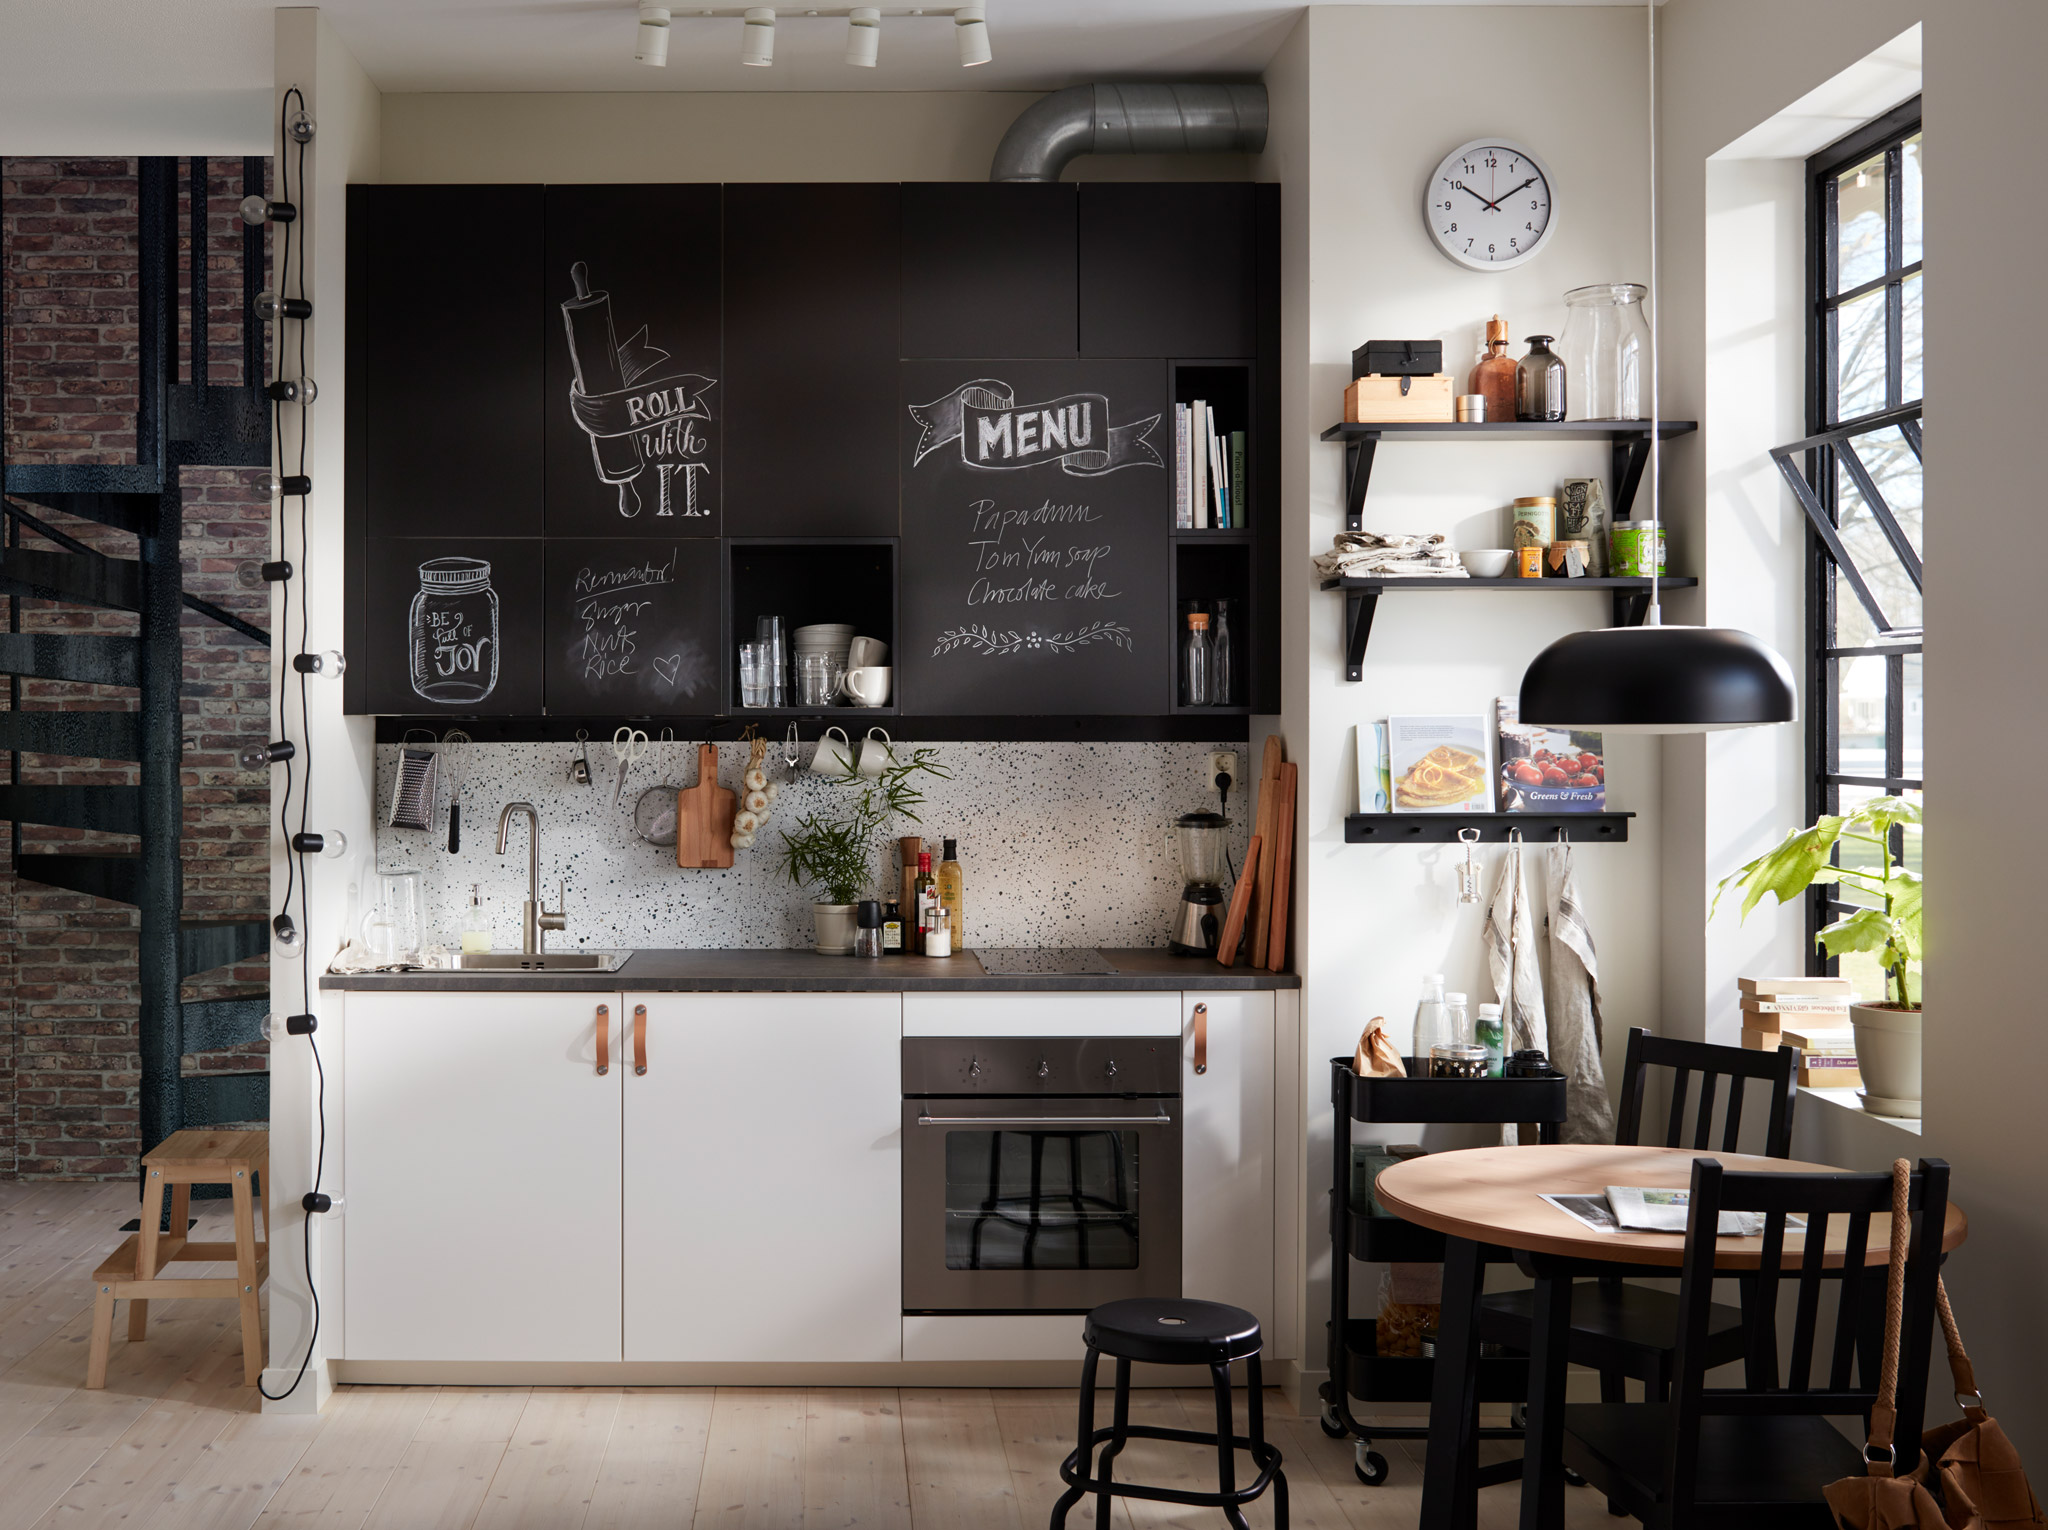 The 2018 Ikea Catalog Means New And Discontinued Kitchen Items